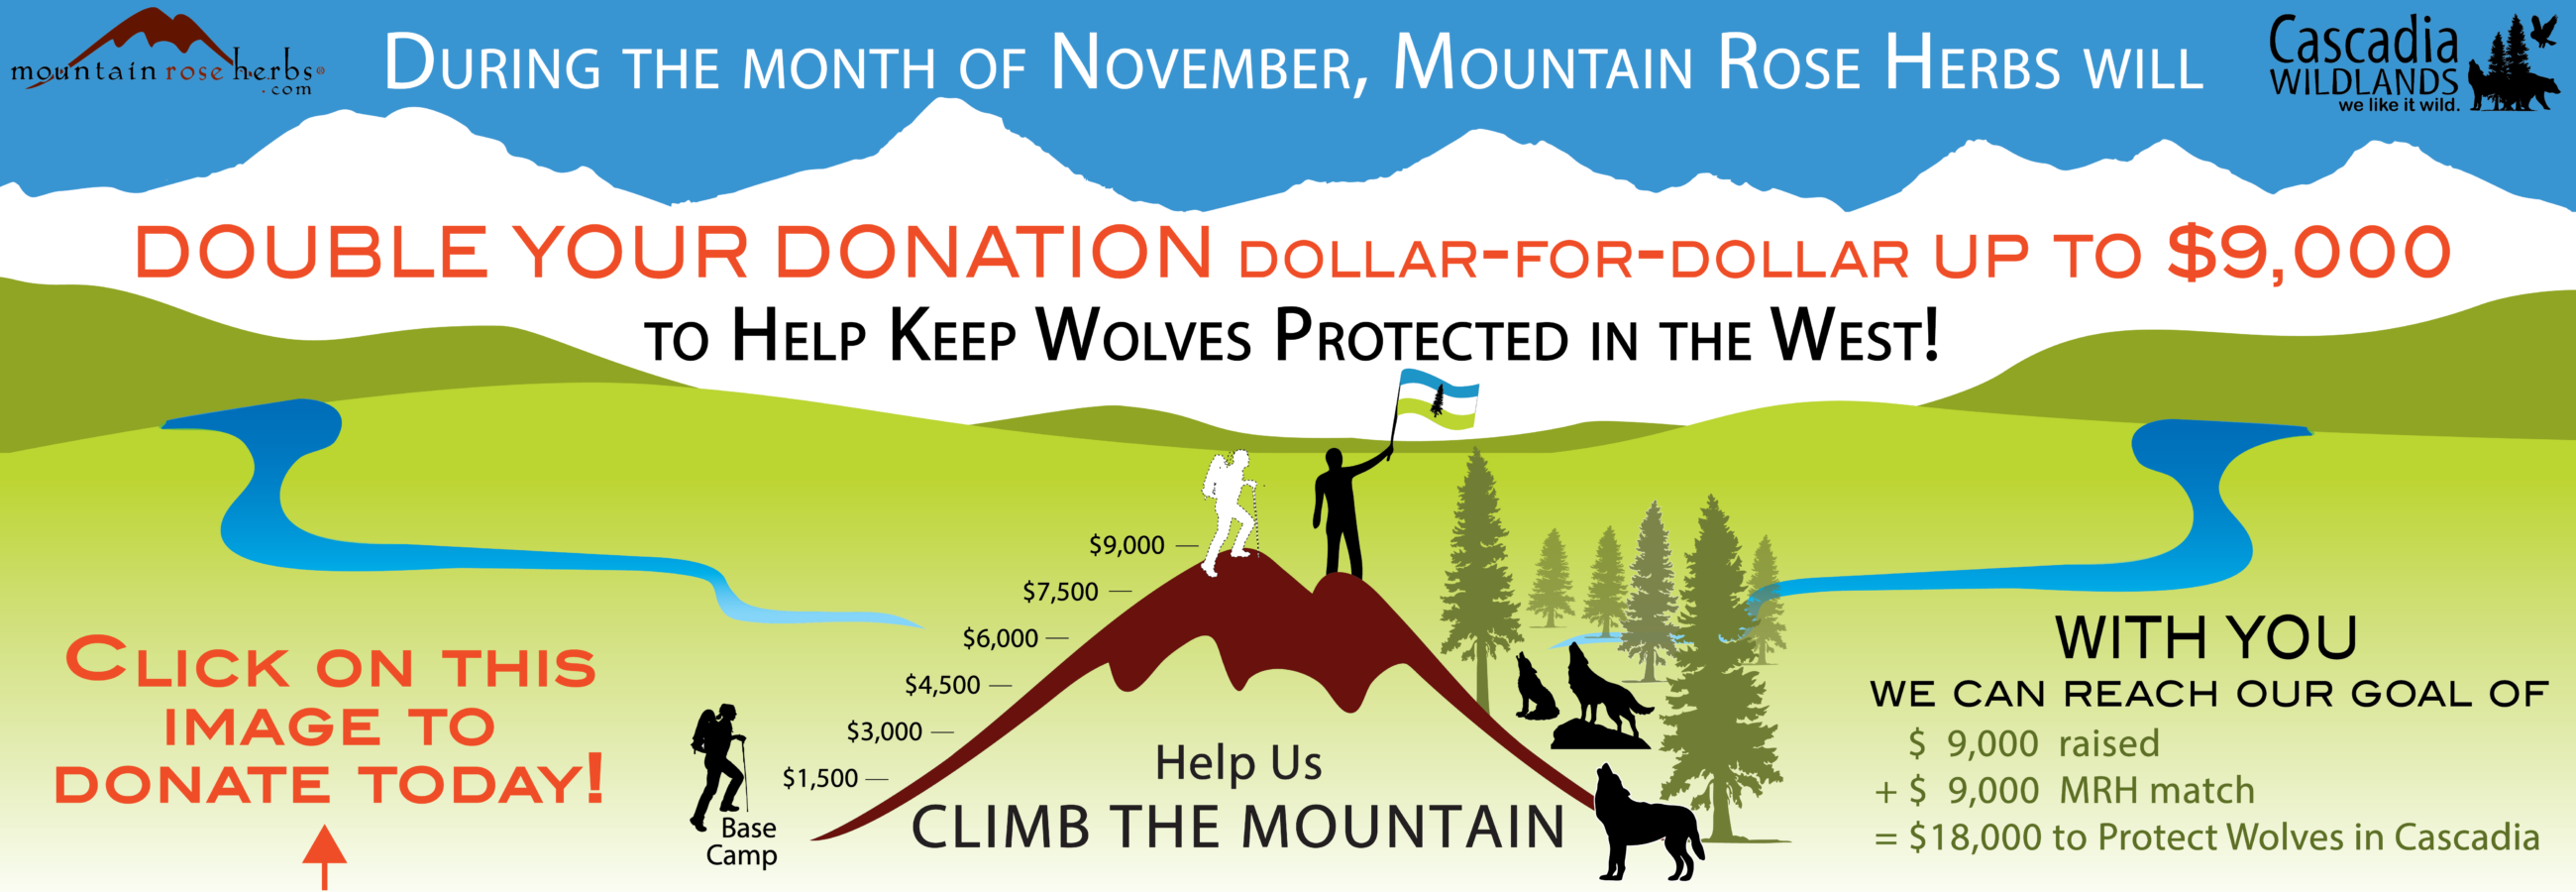 Cascadia Wildlands Fundraiser Fundraising for Wolves and Wolf Protection in the West with Mountain Rose Herbs